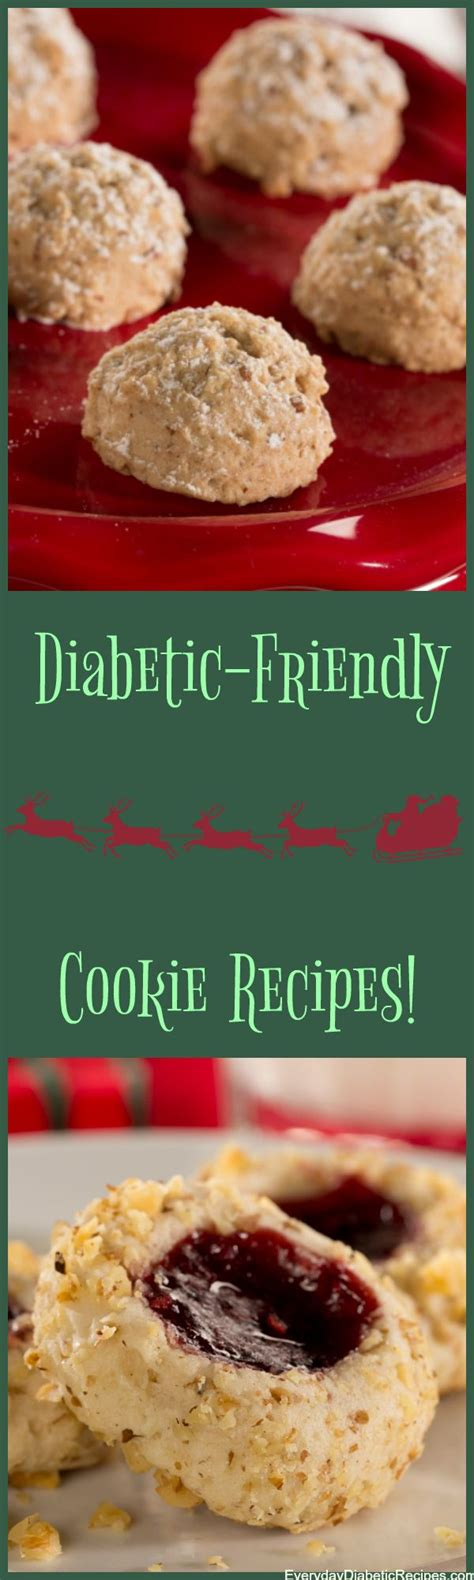 Find healthy, delicious diabetic cookie, bar and brownie recipes, from the food and nutrition experts at eatingwell. Diabetic Cookie Recipes: Top 16 Best Cookie Recipes You'll Love | Diabetic cookie recipes ...